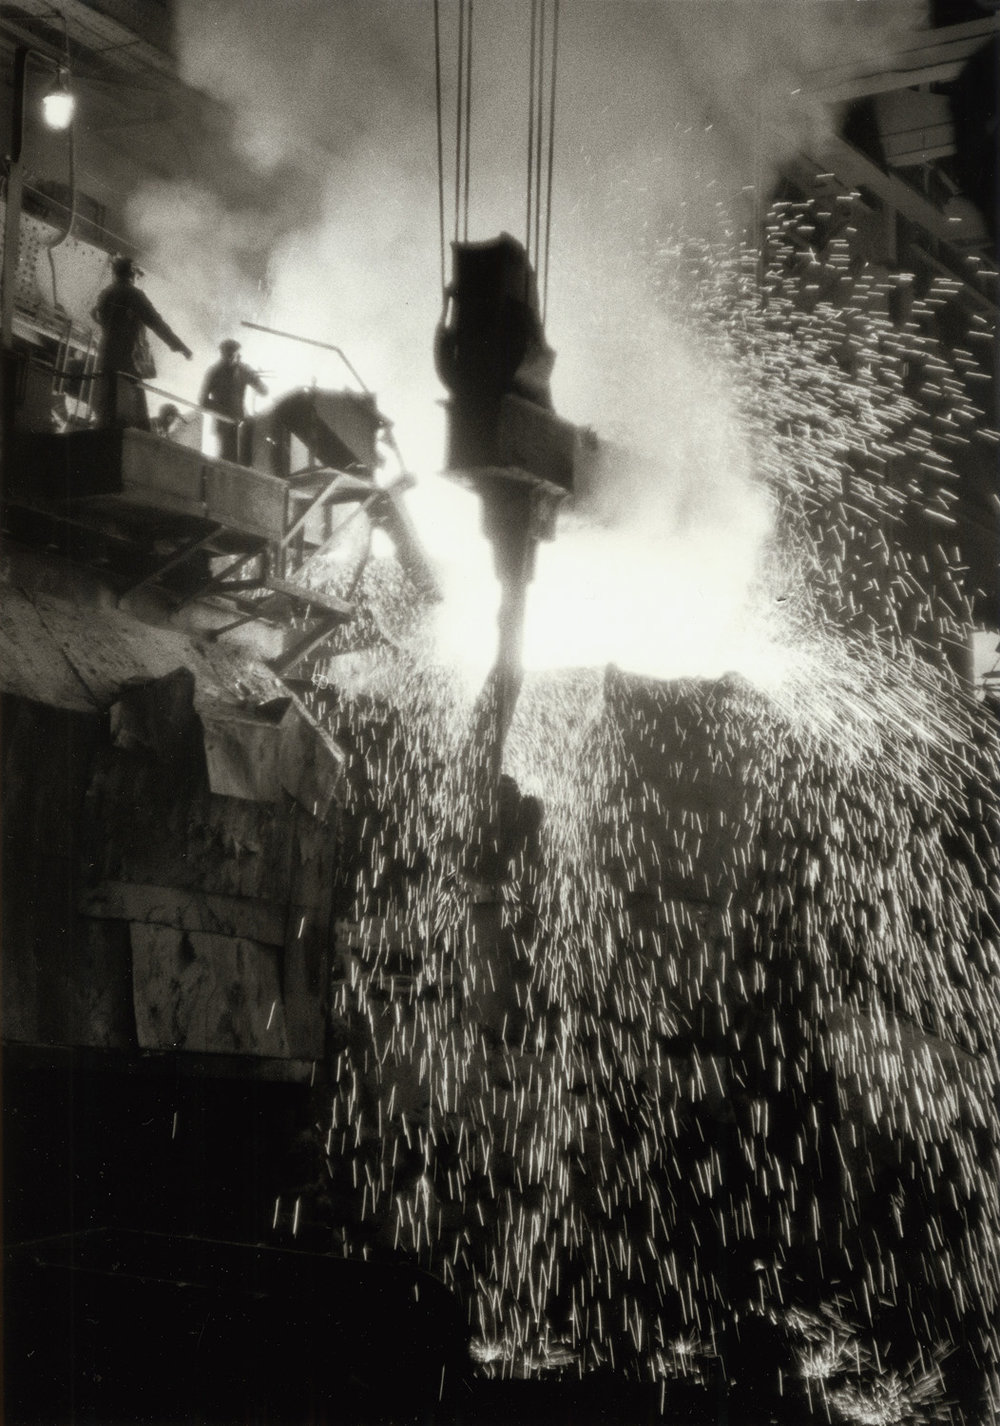 Pouring steel at an Anshan steel mill established by the Japanese during their occupation of China's north east during the 1930s and 1940s. China, August 1956. (RDH C124-5a)